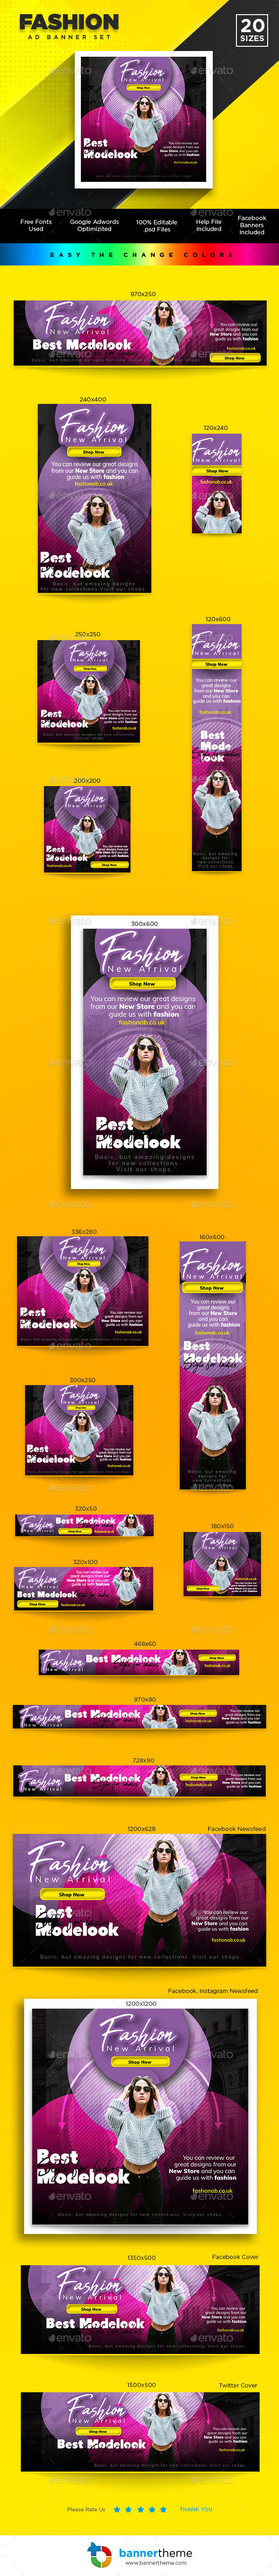 Fashion Banner - Banners & Ads Web Elements